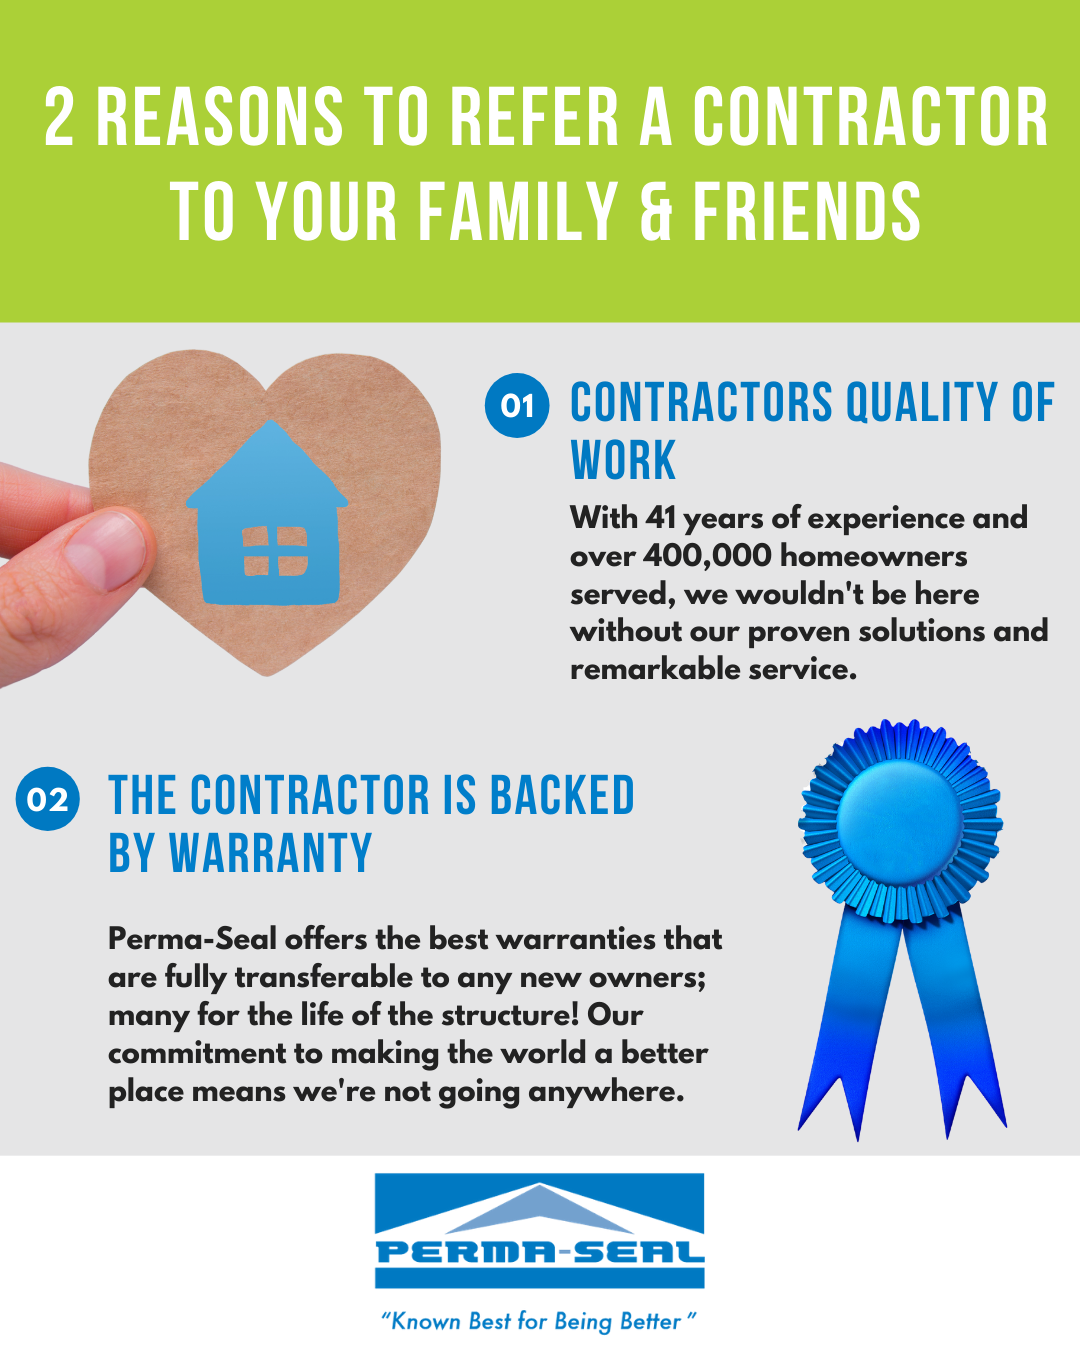 2 Reasons to Refer a Contractor to Your Family and Friends